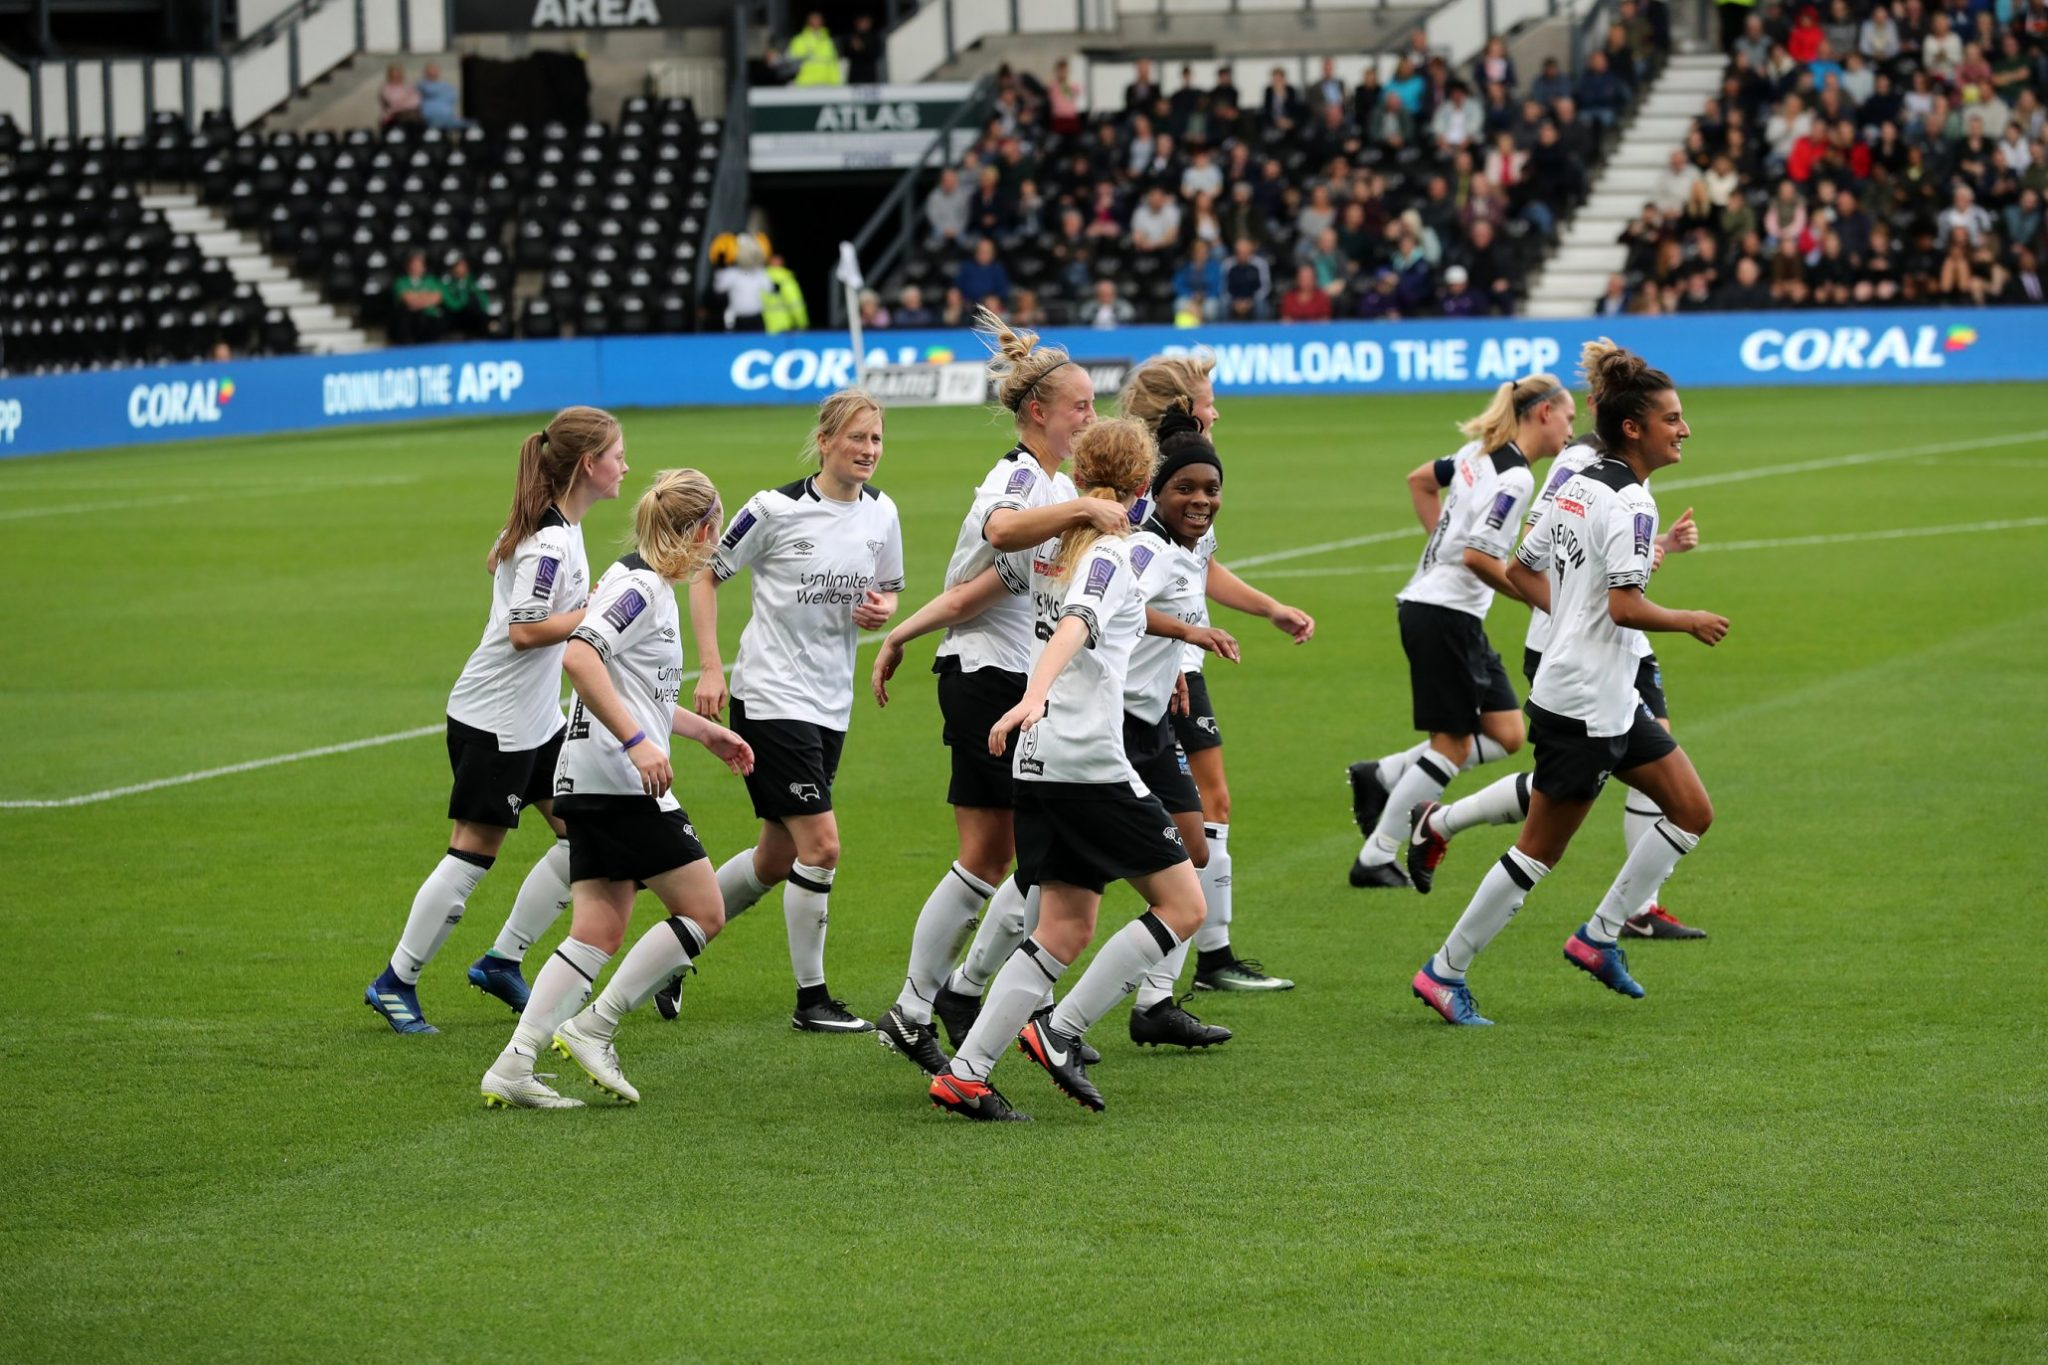 Derby County play at Pride Park